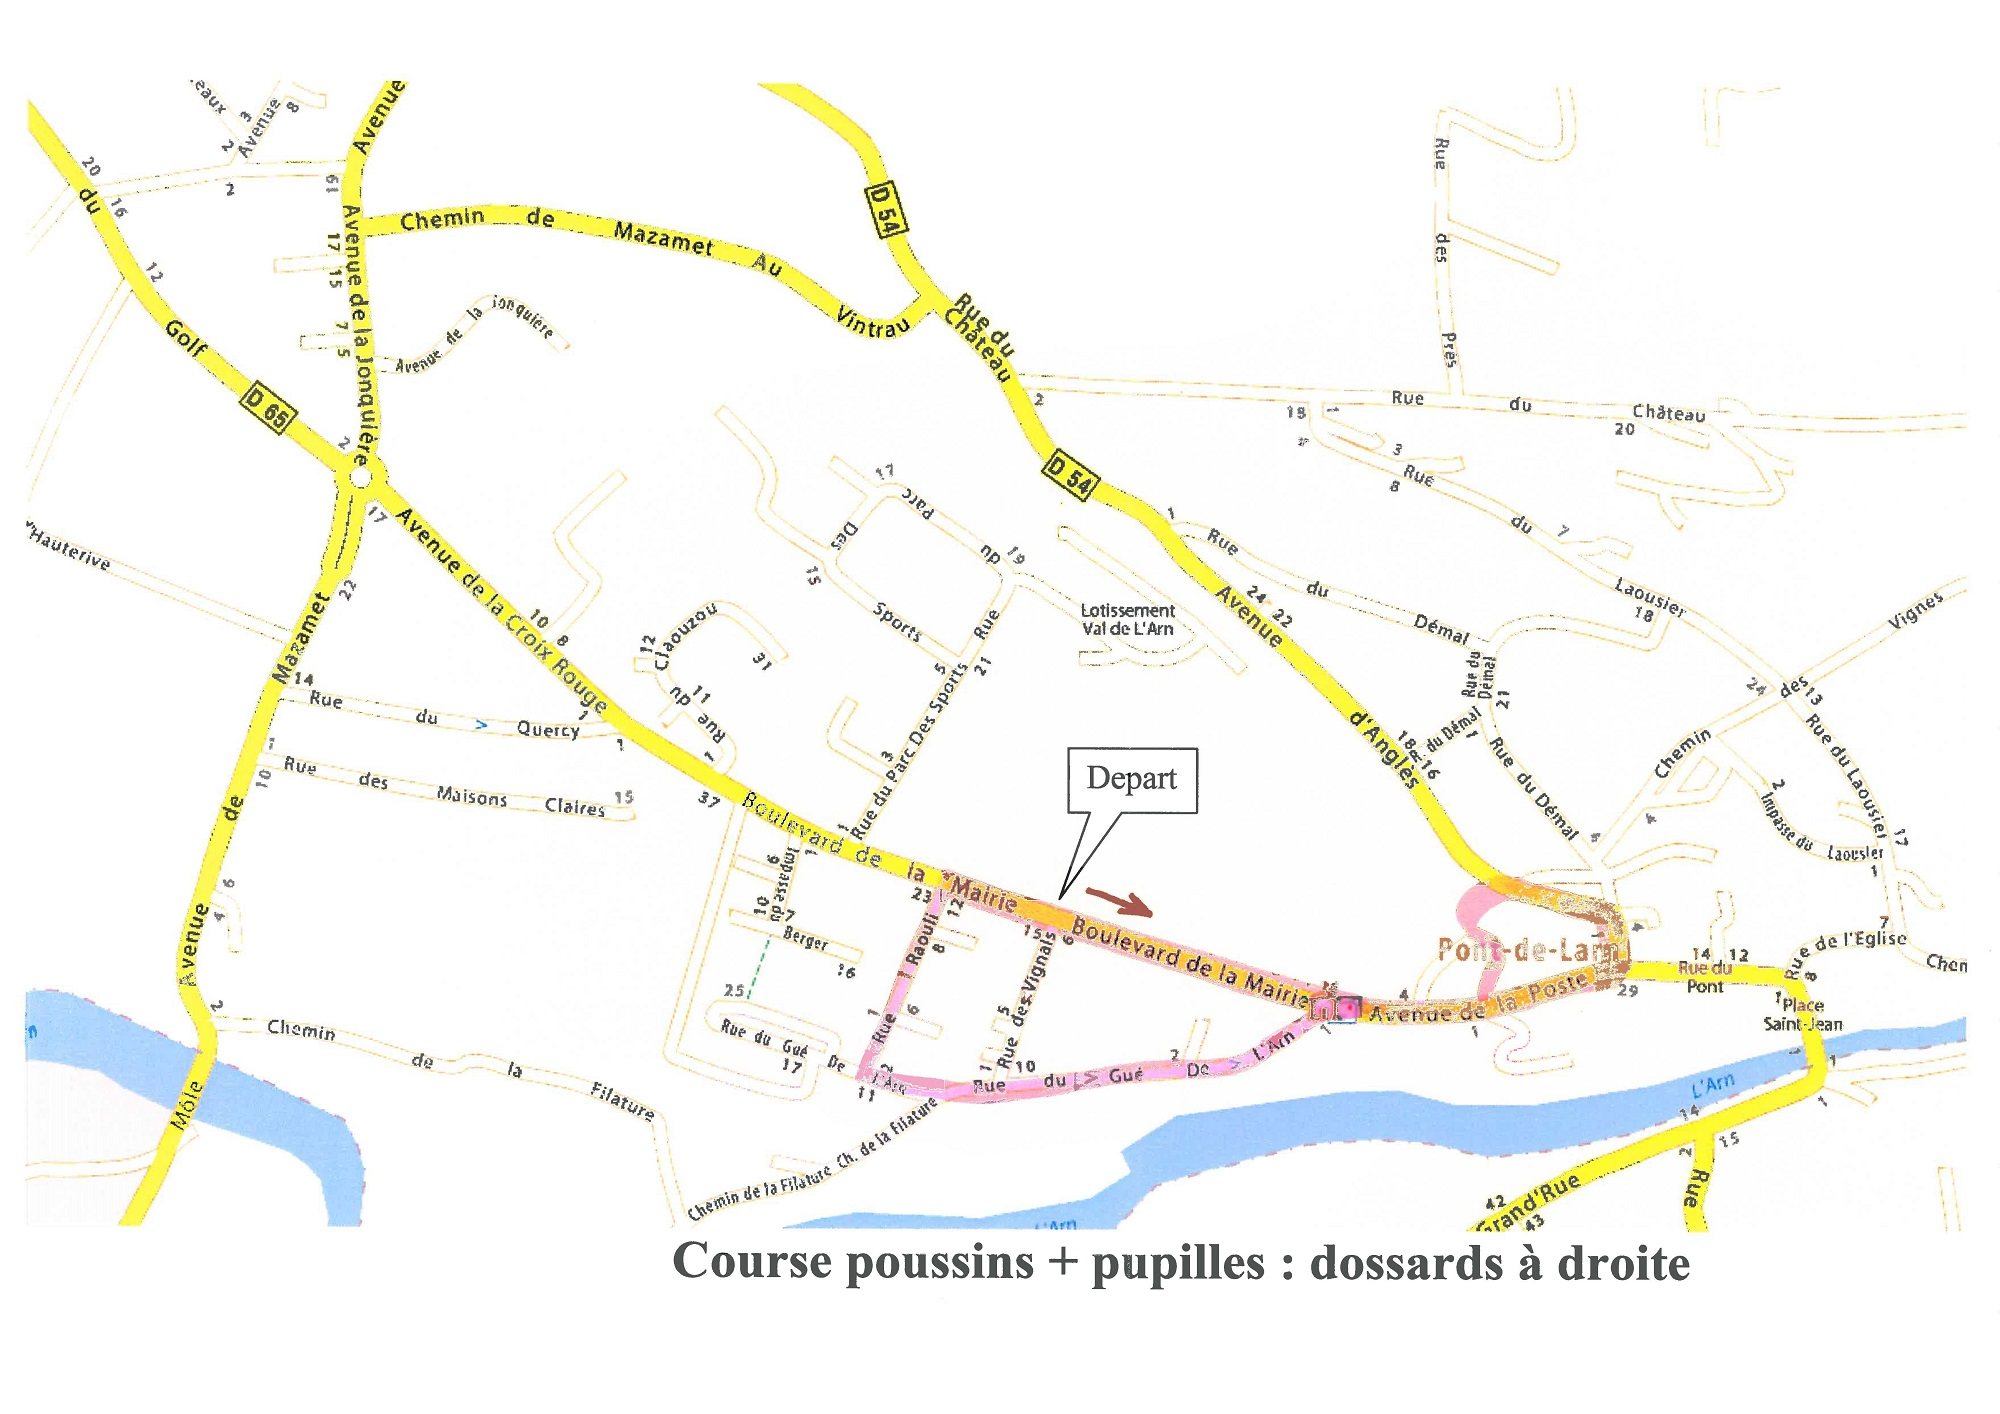 Course poussins-pupilles